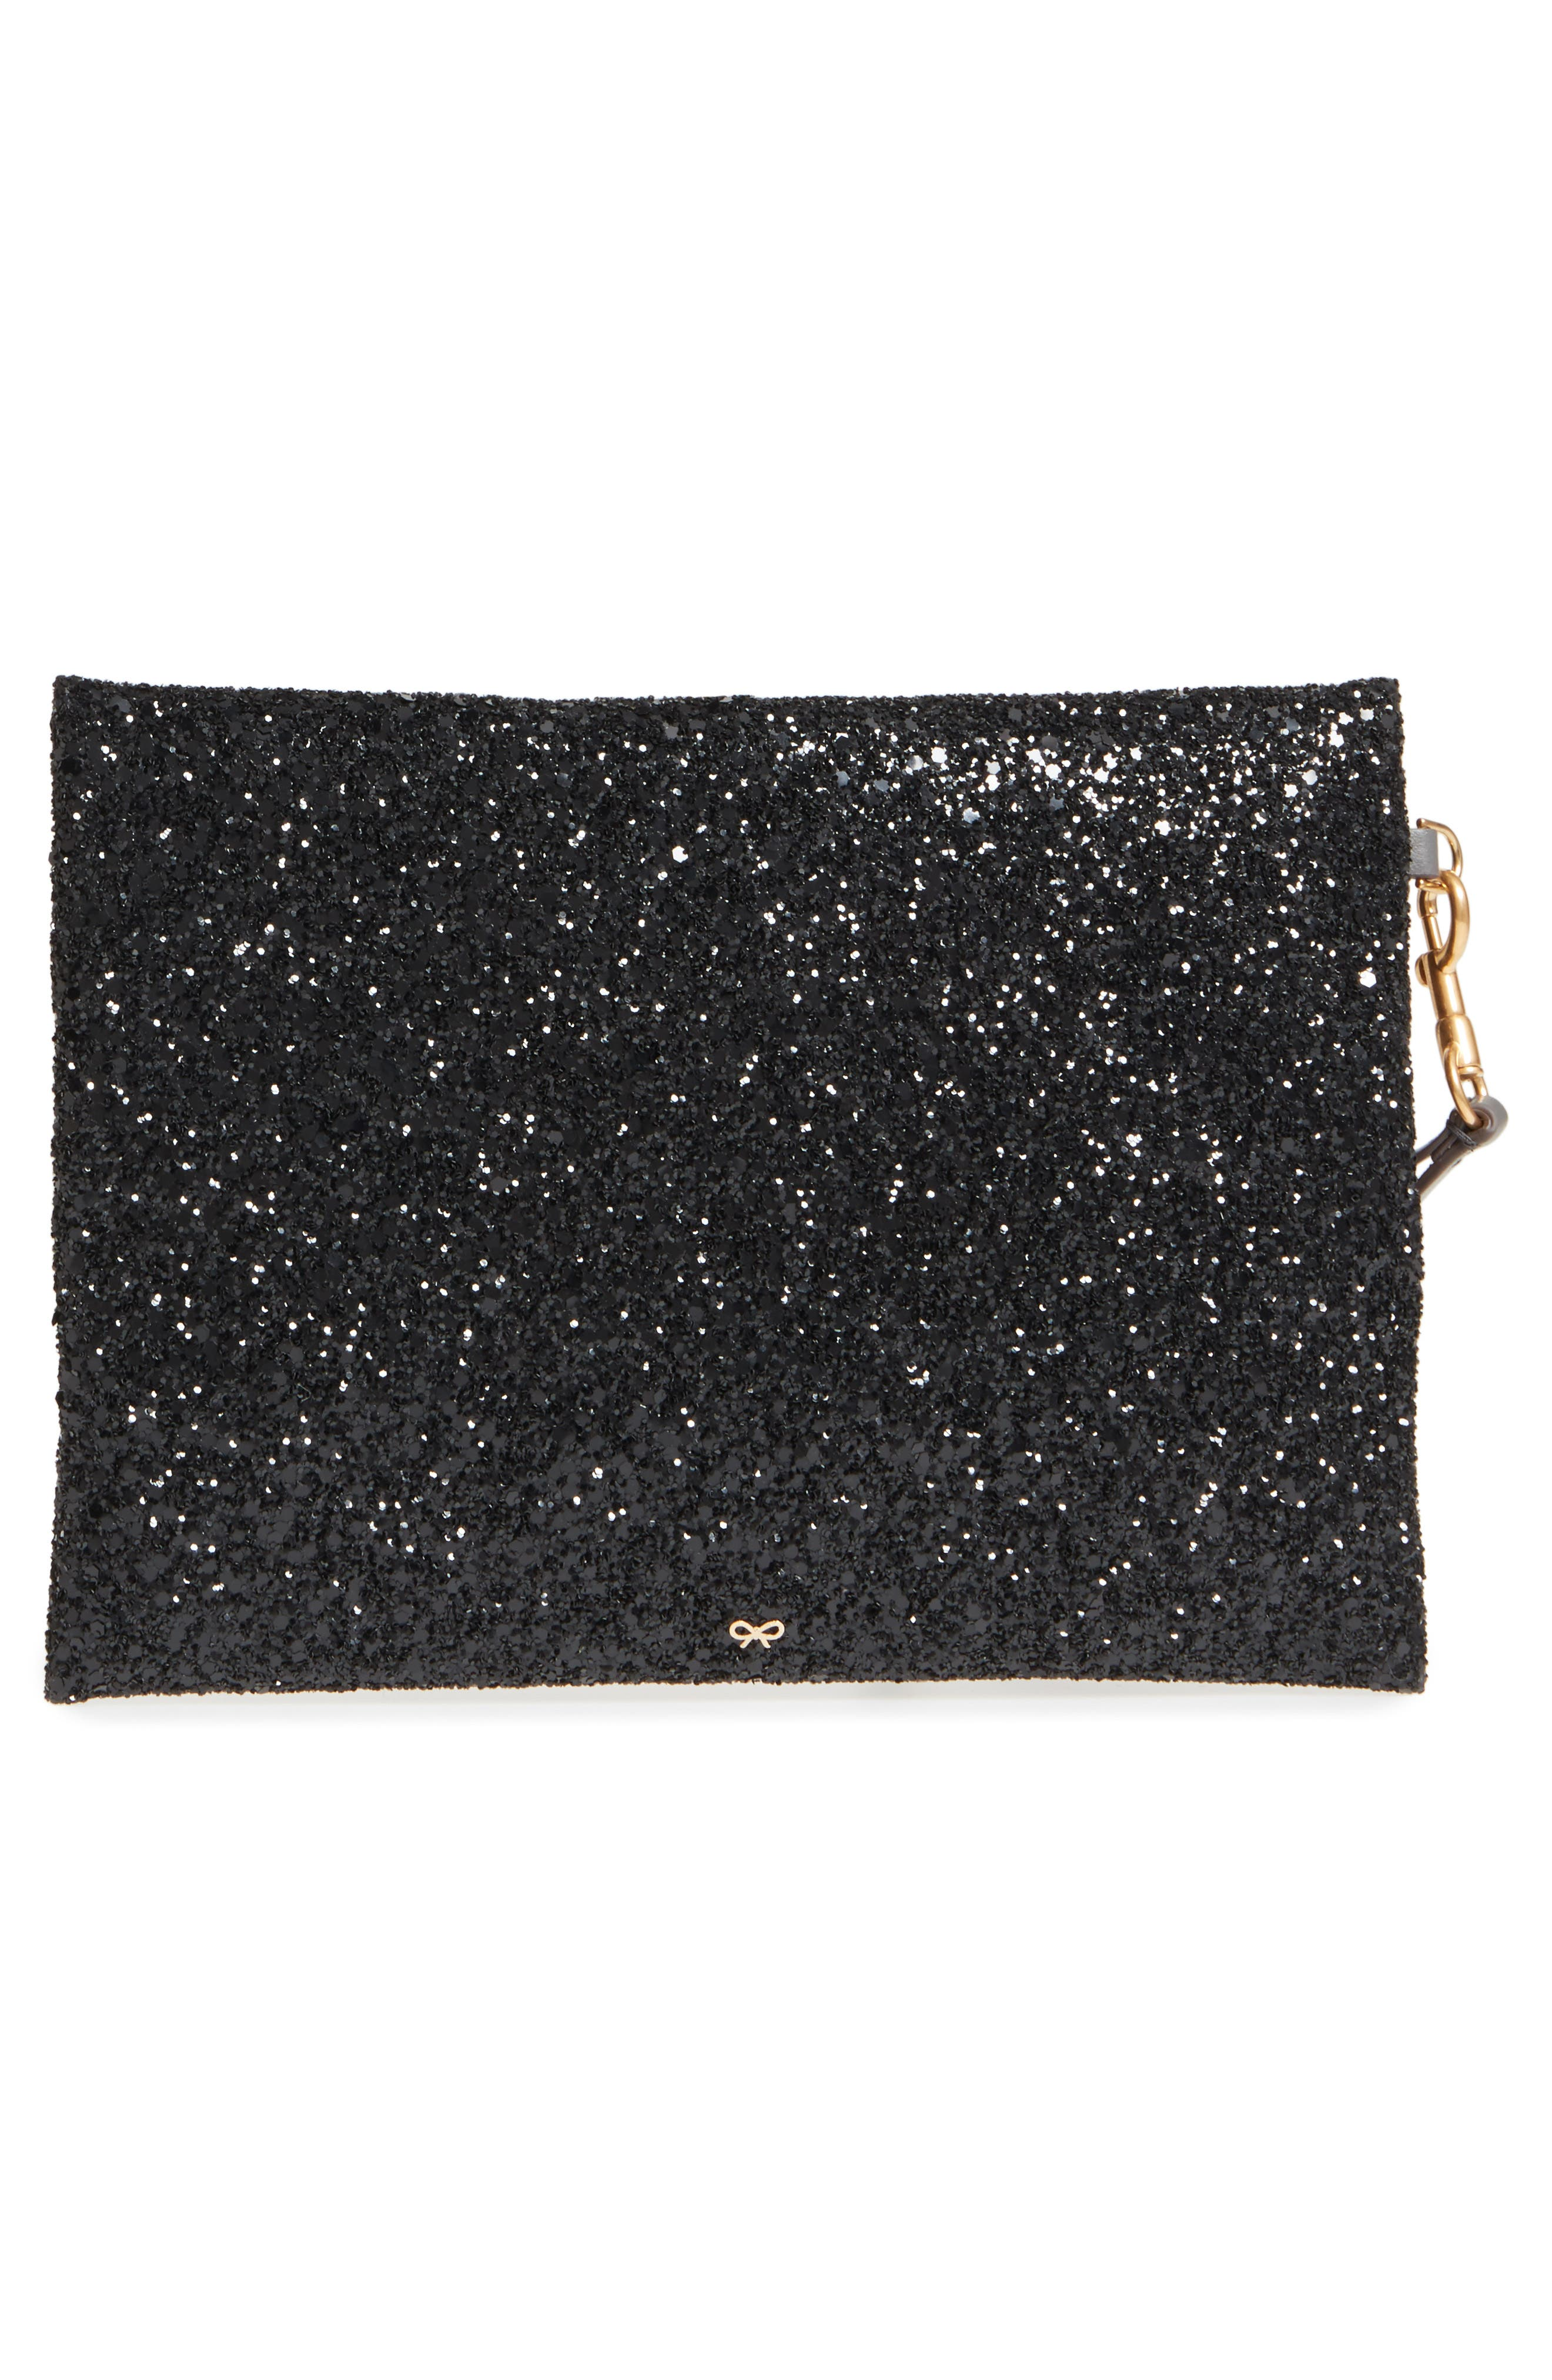 Alternate Image 3  - Anya Hindmarch Eyes Circulus Glitter Pouch